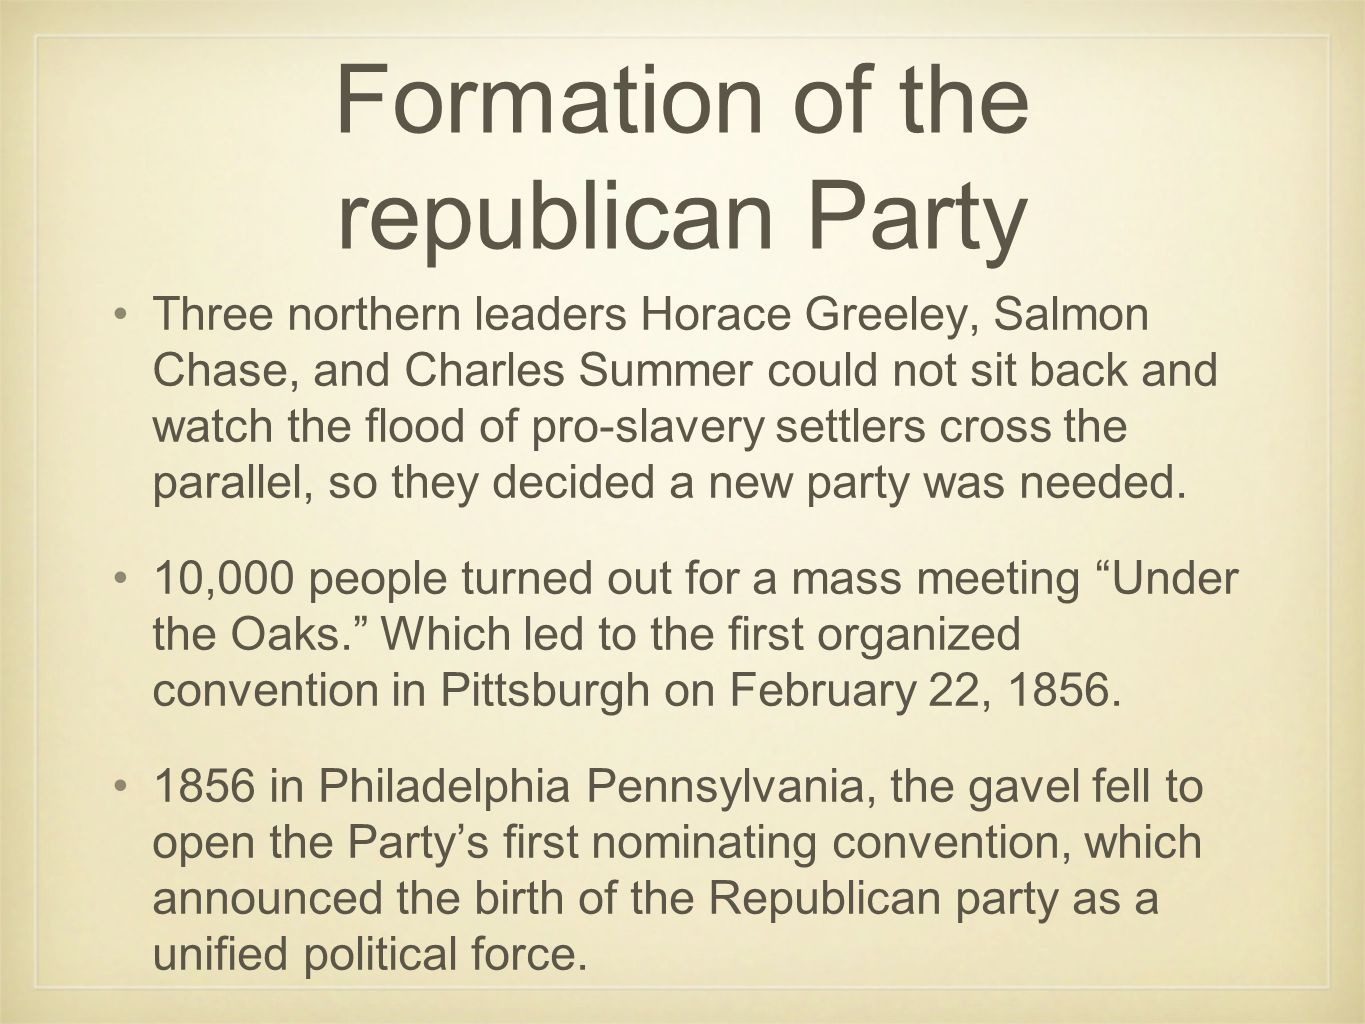 Formation of the republican Party Three northern leaders Horace Greeley, Salmon Chase, and Charles Summer could not sit back and watch the flood of pro-slavery settlers cross the parallel, so they decided a new party was needed.